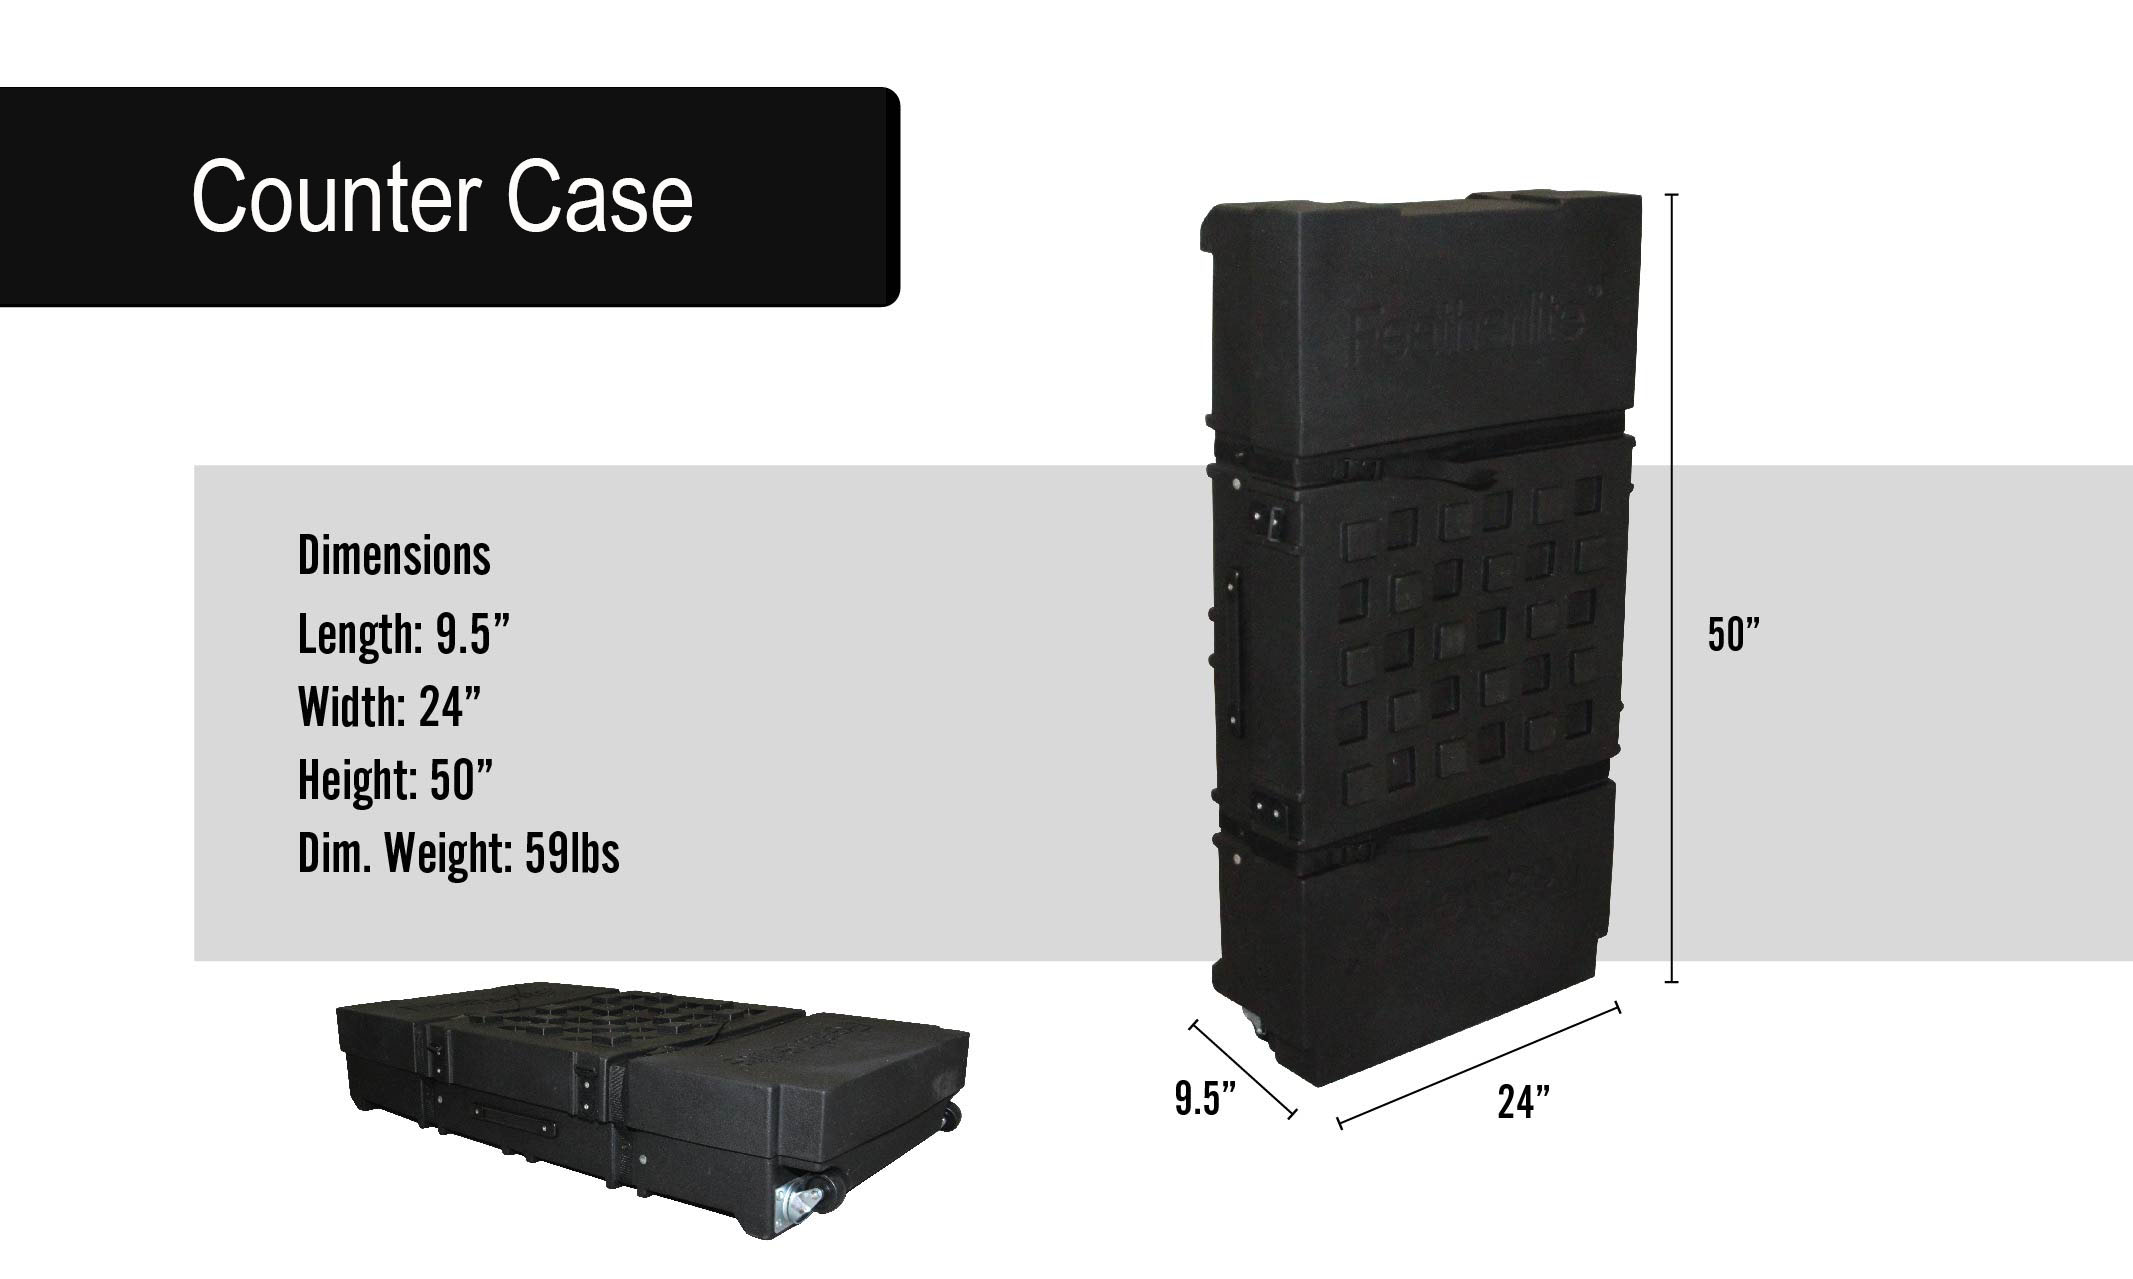 Valencia Portable Displays Counter Case